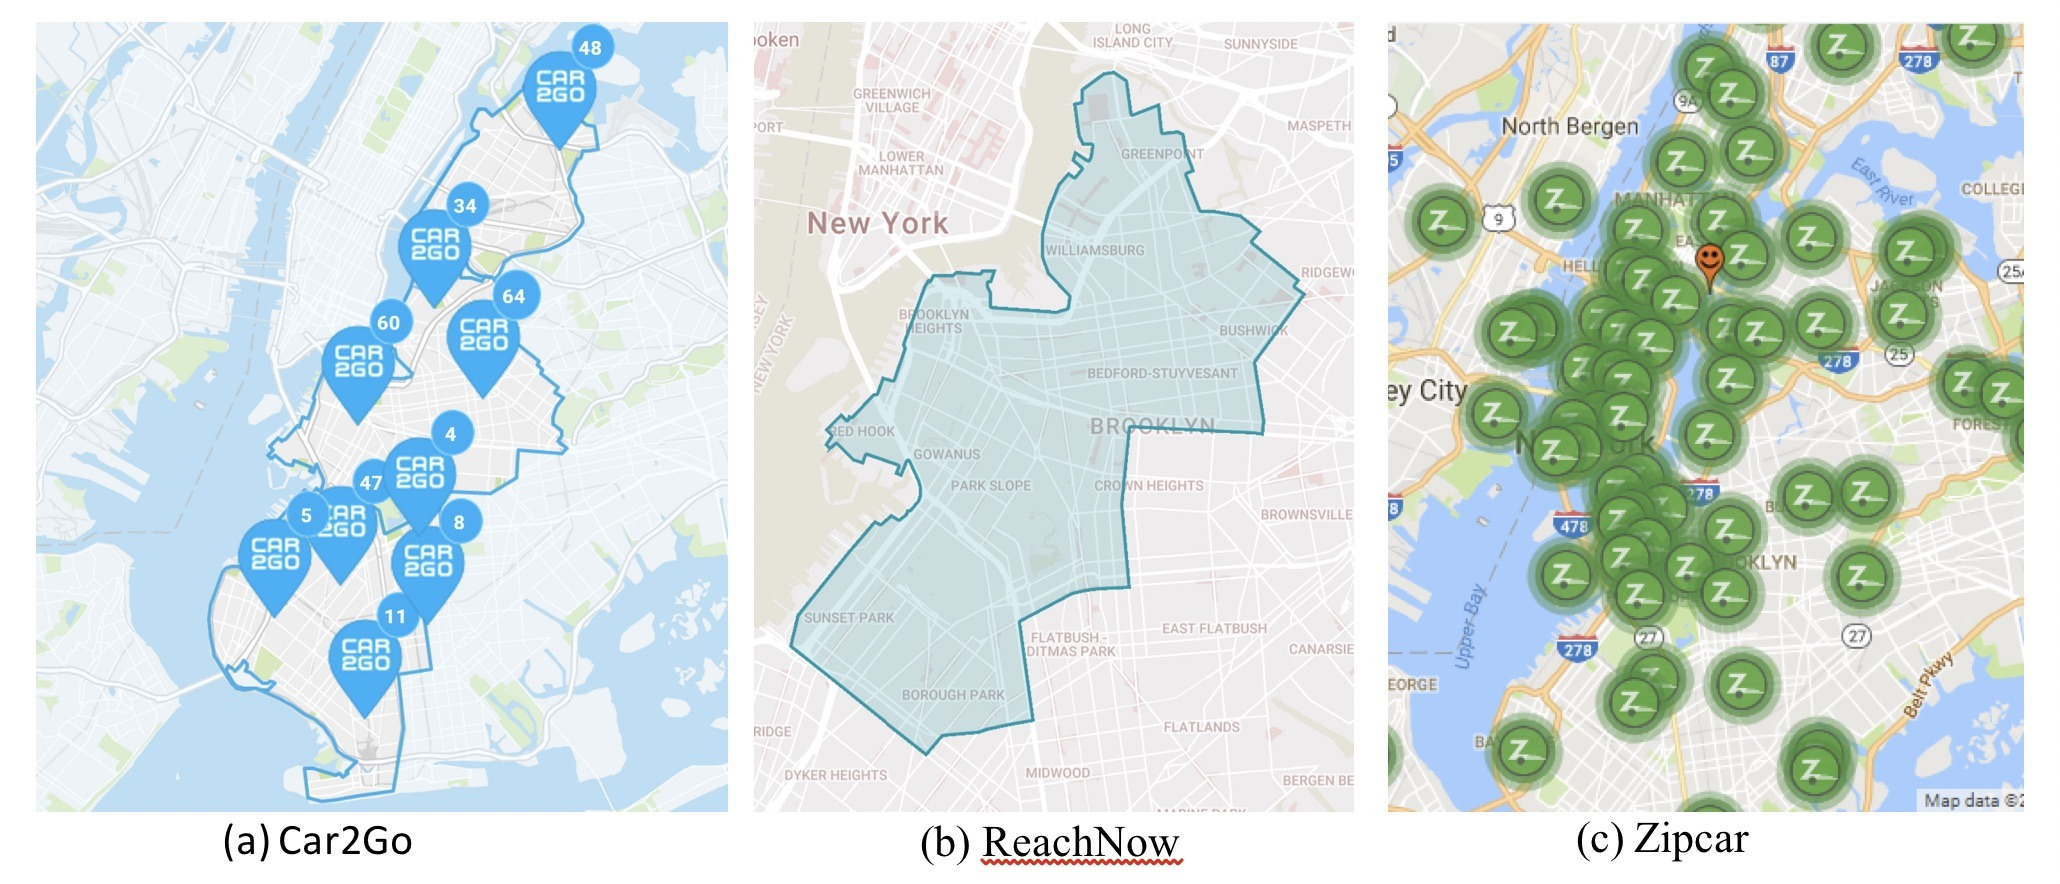 Carsharing coverage areas in NYC